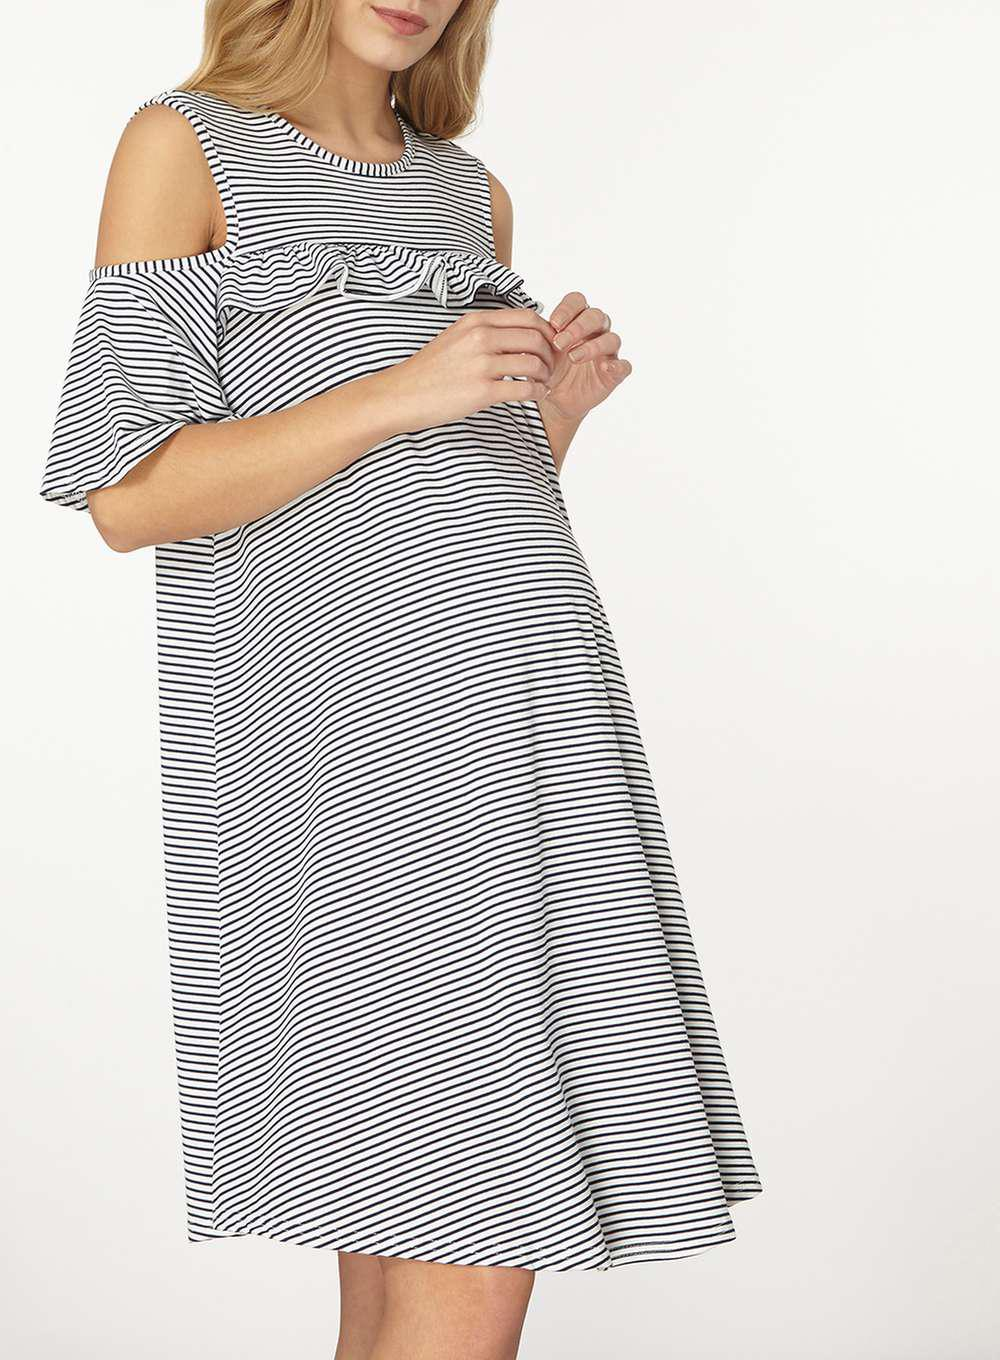 c4f4531ff8 Lyst - Dorothy Perkins Maternity Navy Striped Cold Shoulder Dress in ...